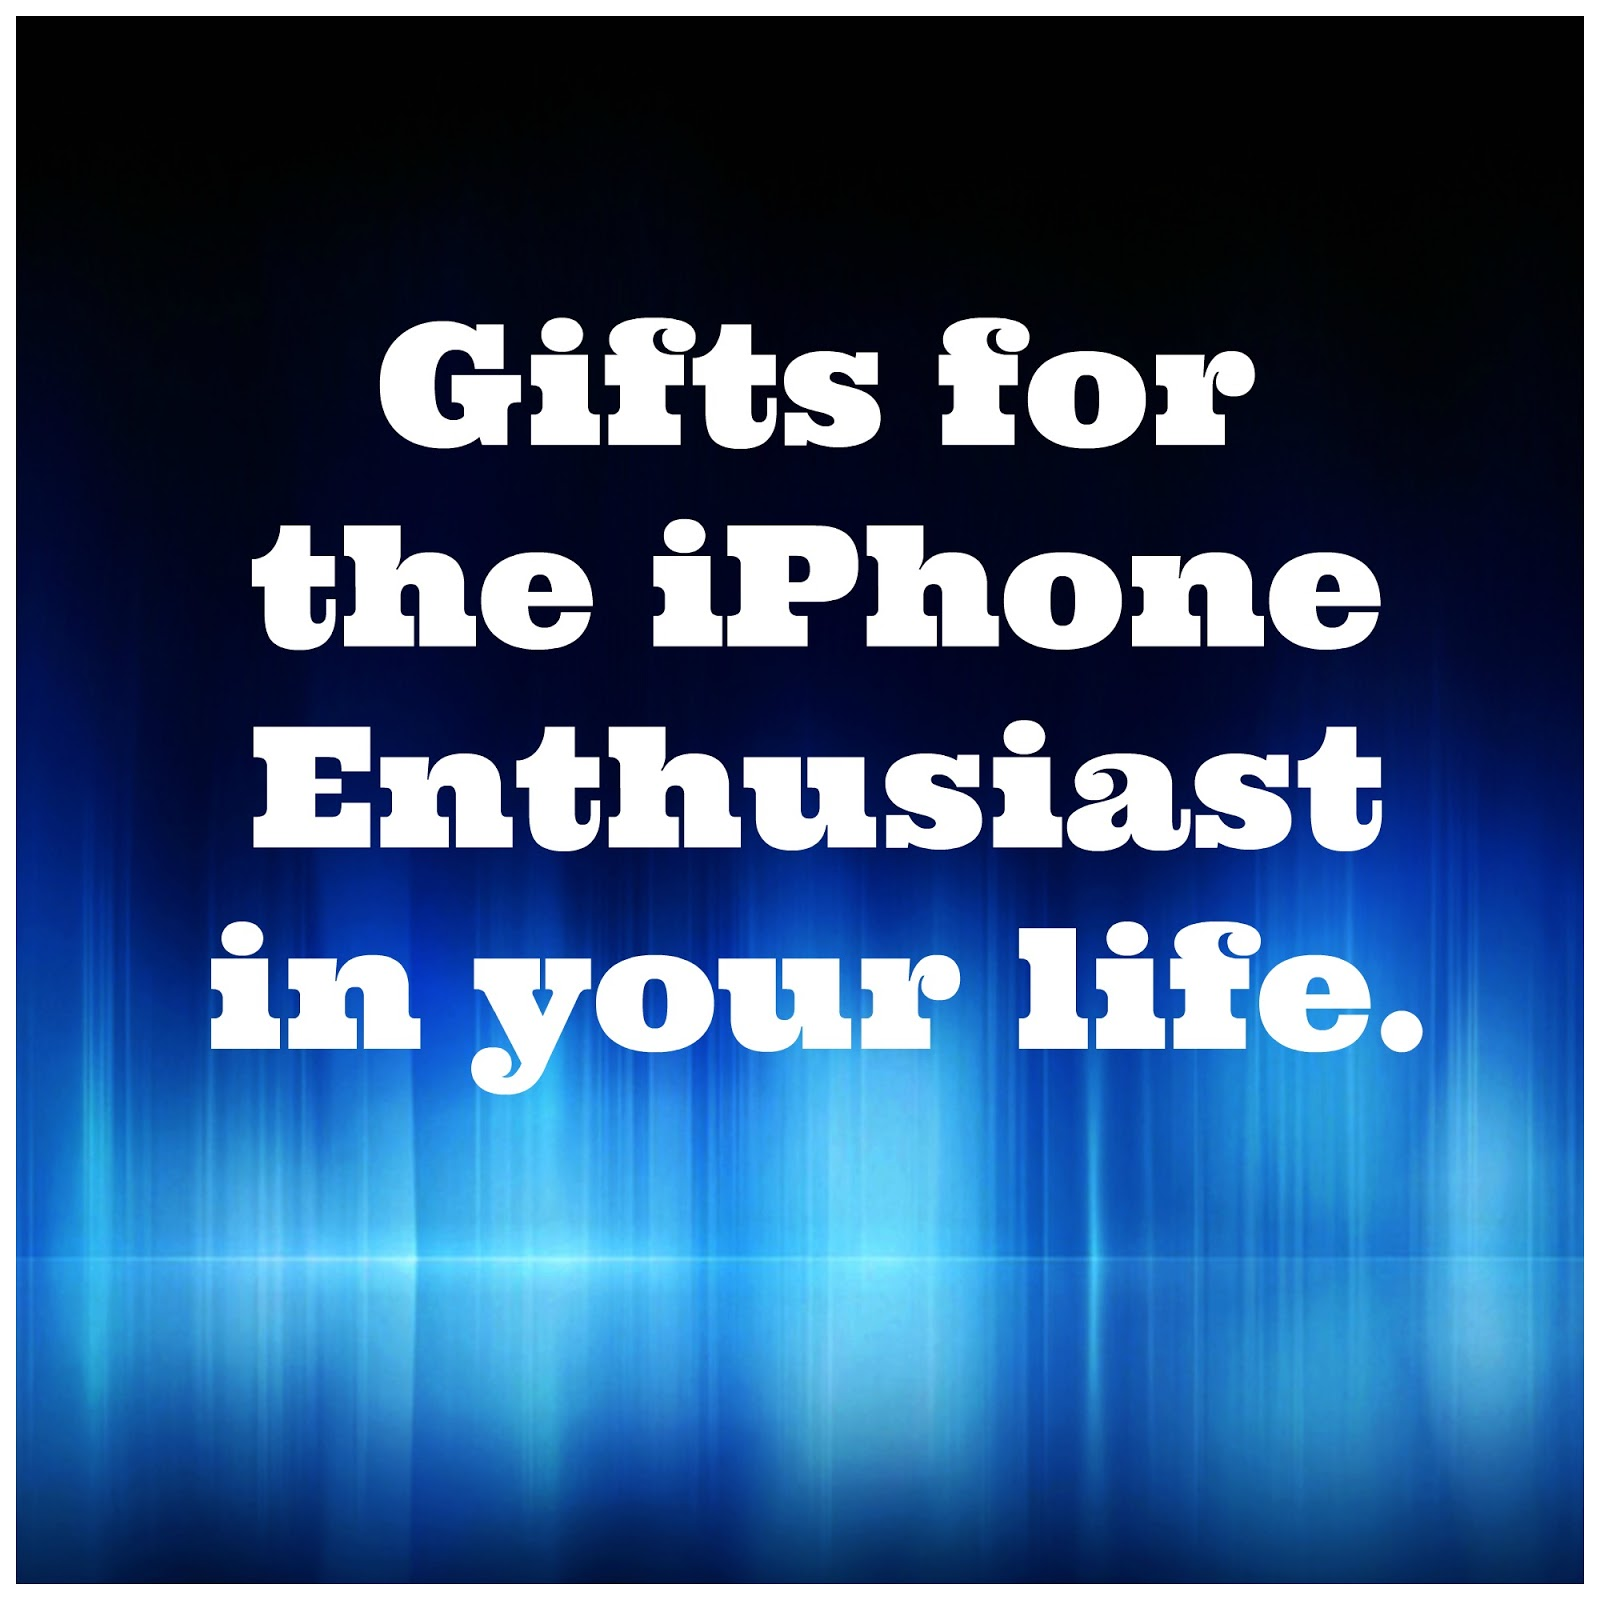 Gifts for the iPhone Enthusiast in your life.